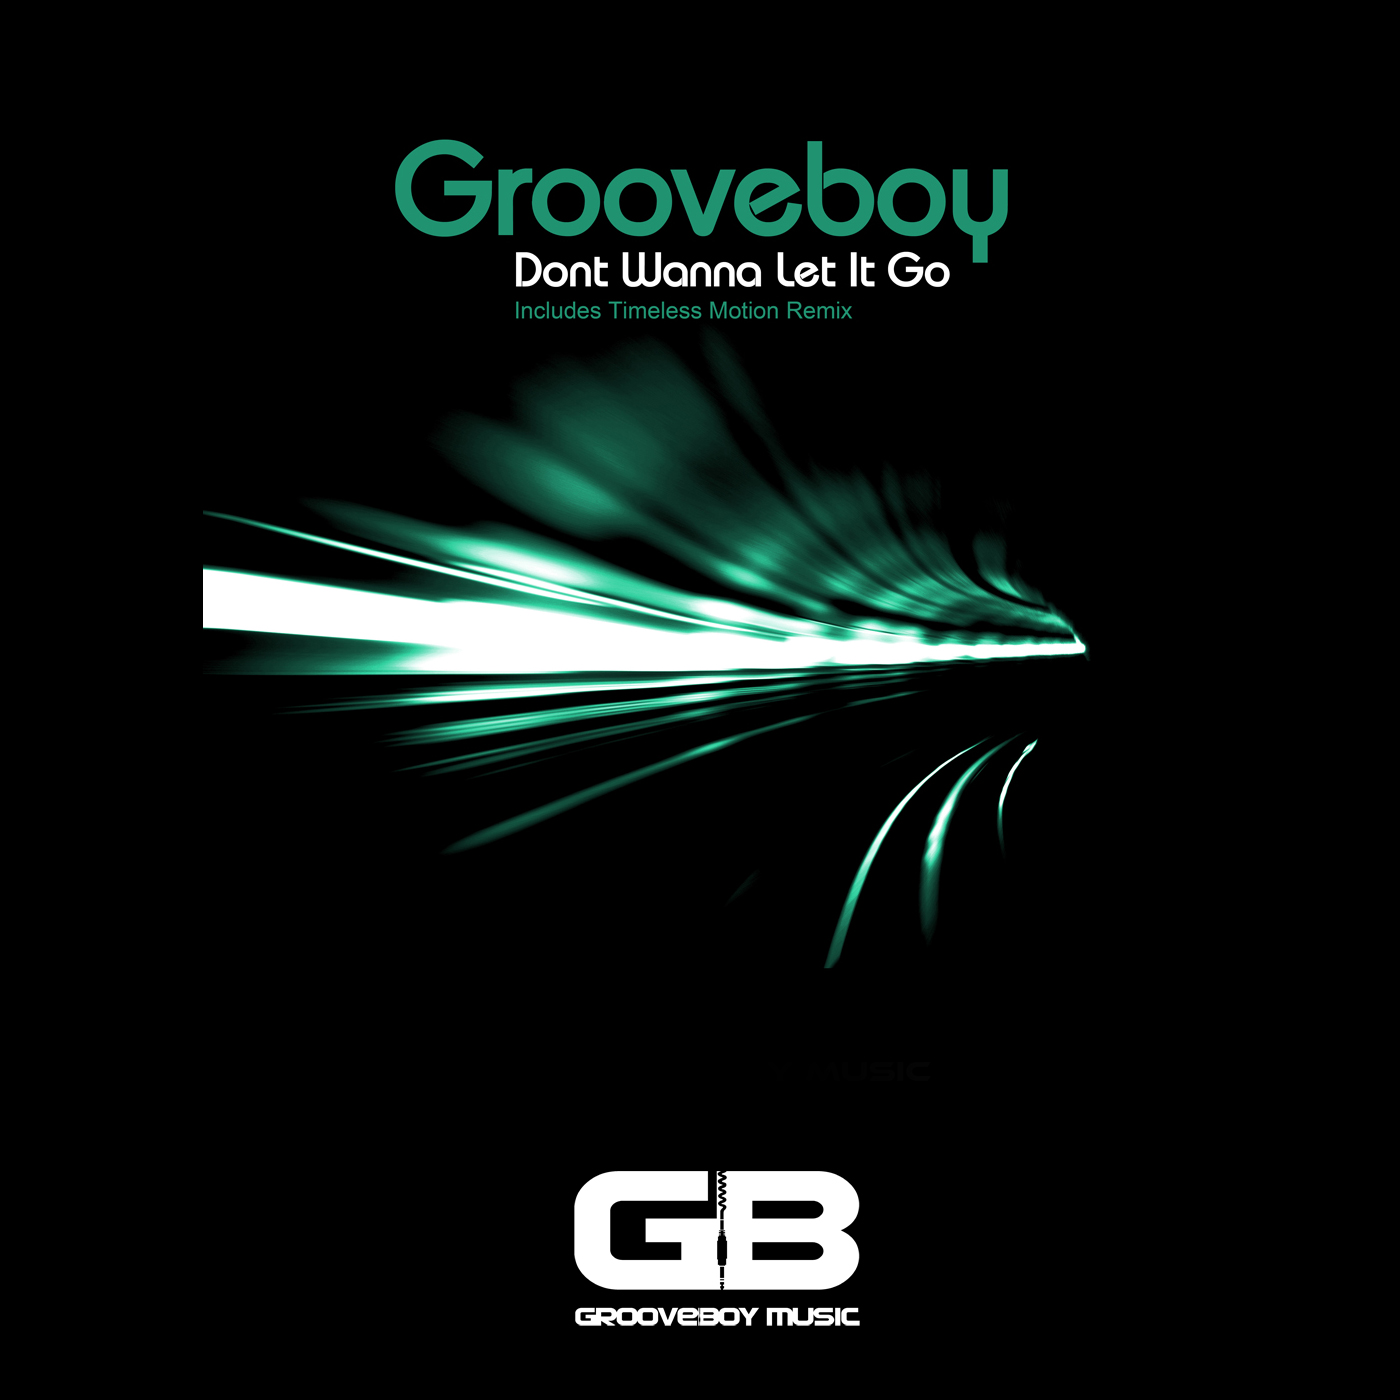 Grooveboy - Don't Wanna Let It Go